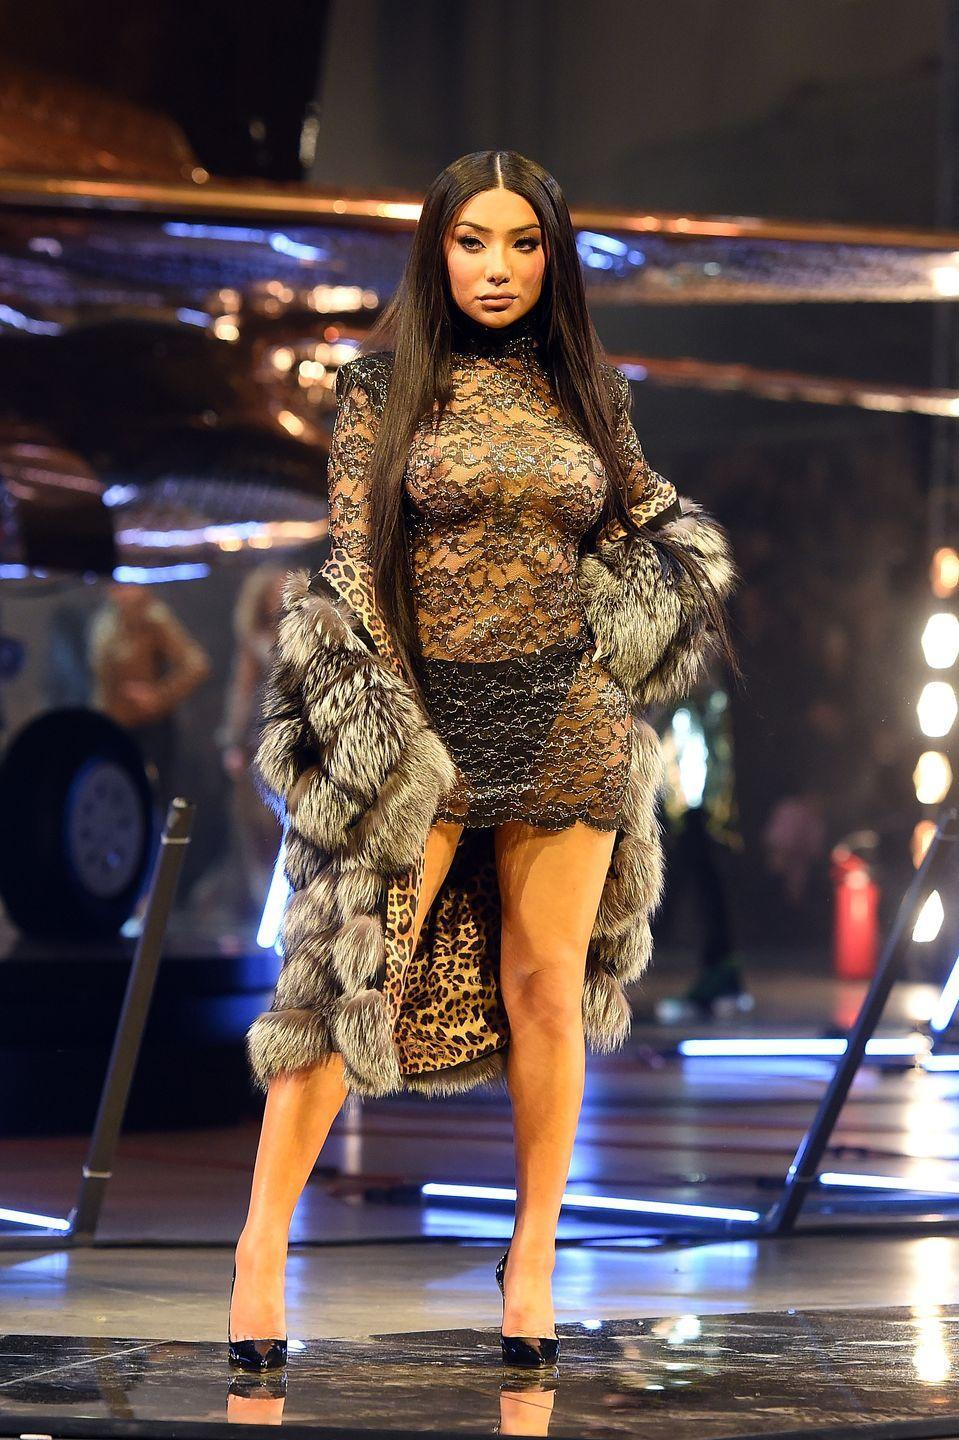 """<p>She might have <a href=""""https://www.seventeen.com/fashion/celeb-fashion/a31076576/nikita-dragun-tripped-on-the-philipp-plein-runway-at-fashion-week/"""" rel=""""nofollow noopener"""" target=""""_blank"""" data-ylk=""""slk:tripped during the rehearsal"""" class=""""link rapid-noclick-resp"""">tripped during the rehearsal</a>, but during the Philipp Plein fashion show, Nikita SLAYED. She wore nothing but a sheer lace dress and black panties with a lux-as-hell fur coat. Truly, your fave could never. </p>"""